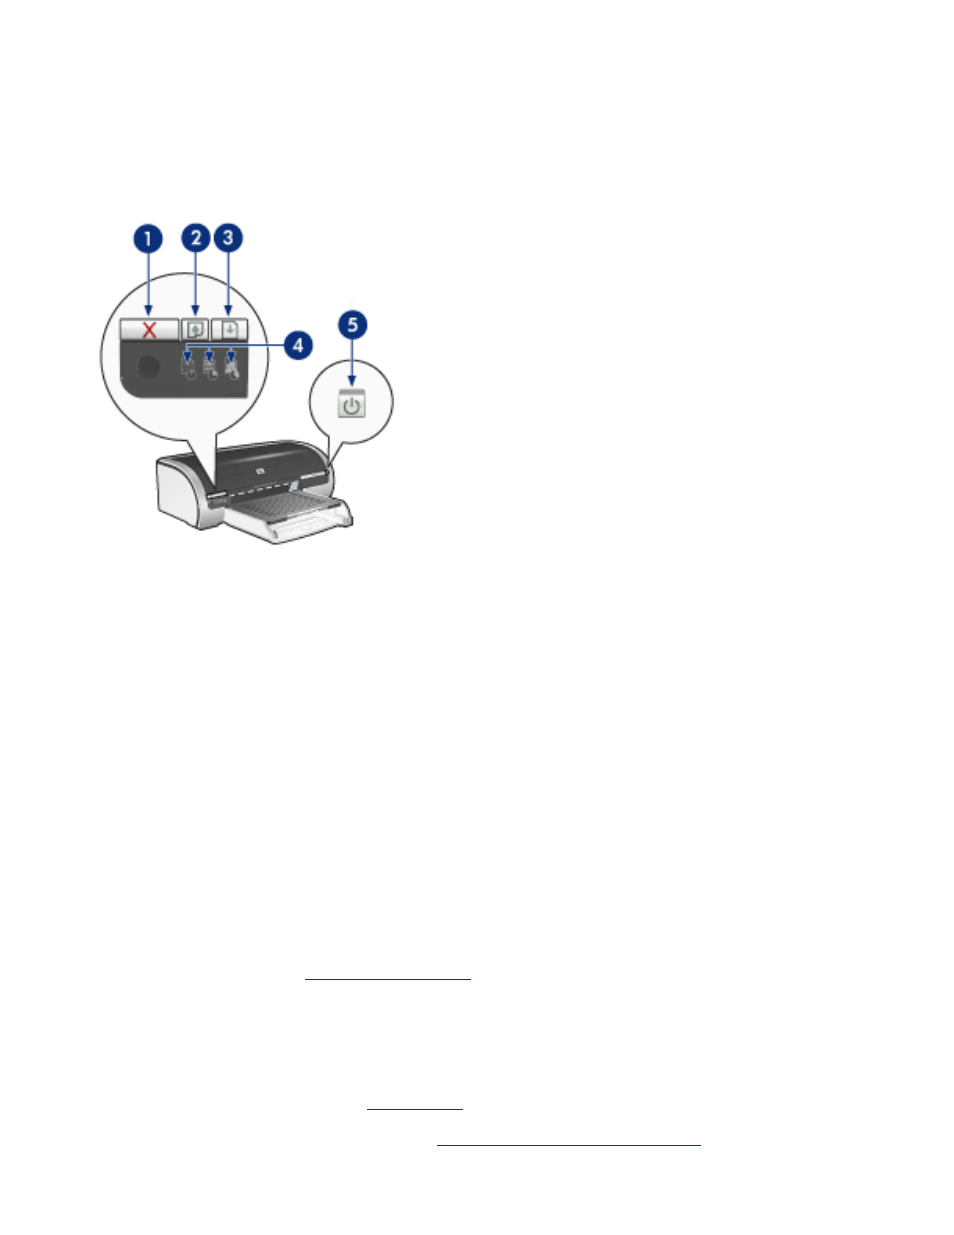 Printer lights are on or flashing | HP Deskjet 5650 User Manual ...